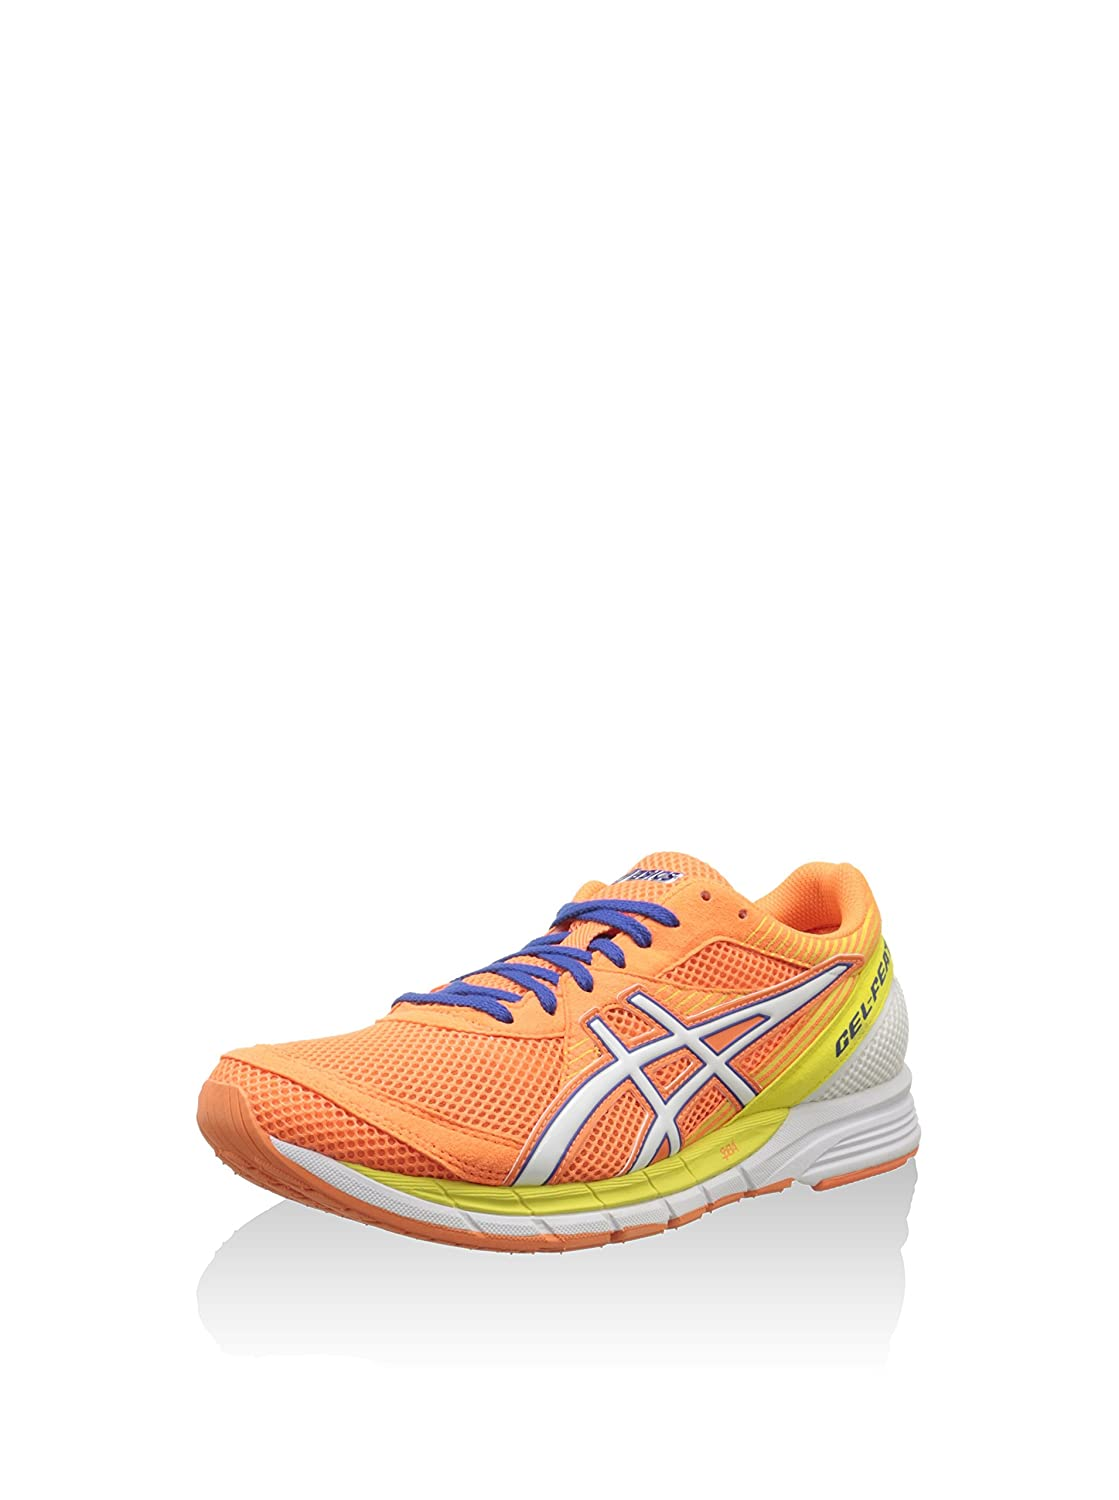 ASICS Herren Gel-Feather Glide 2 Hallenschuhe, Orange/Weiß/Blau, 41.5 EU